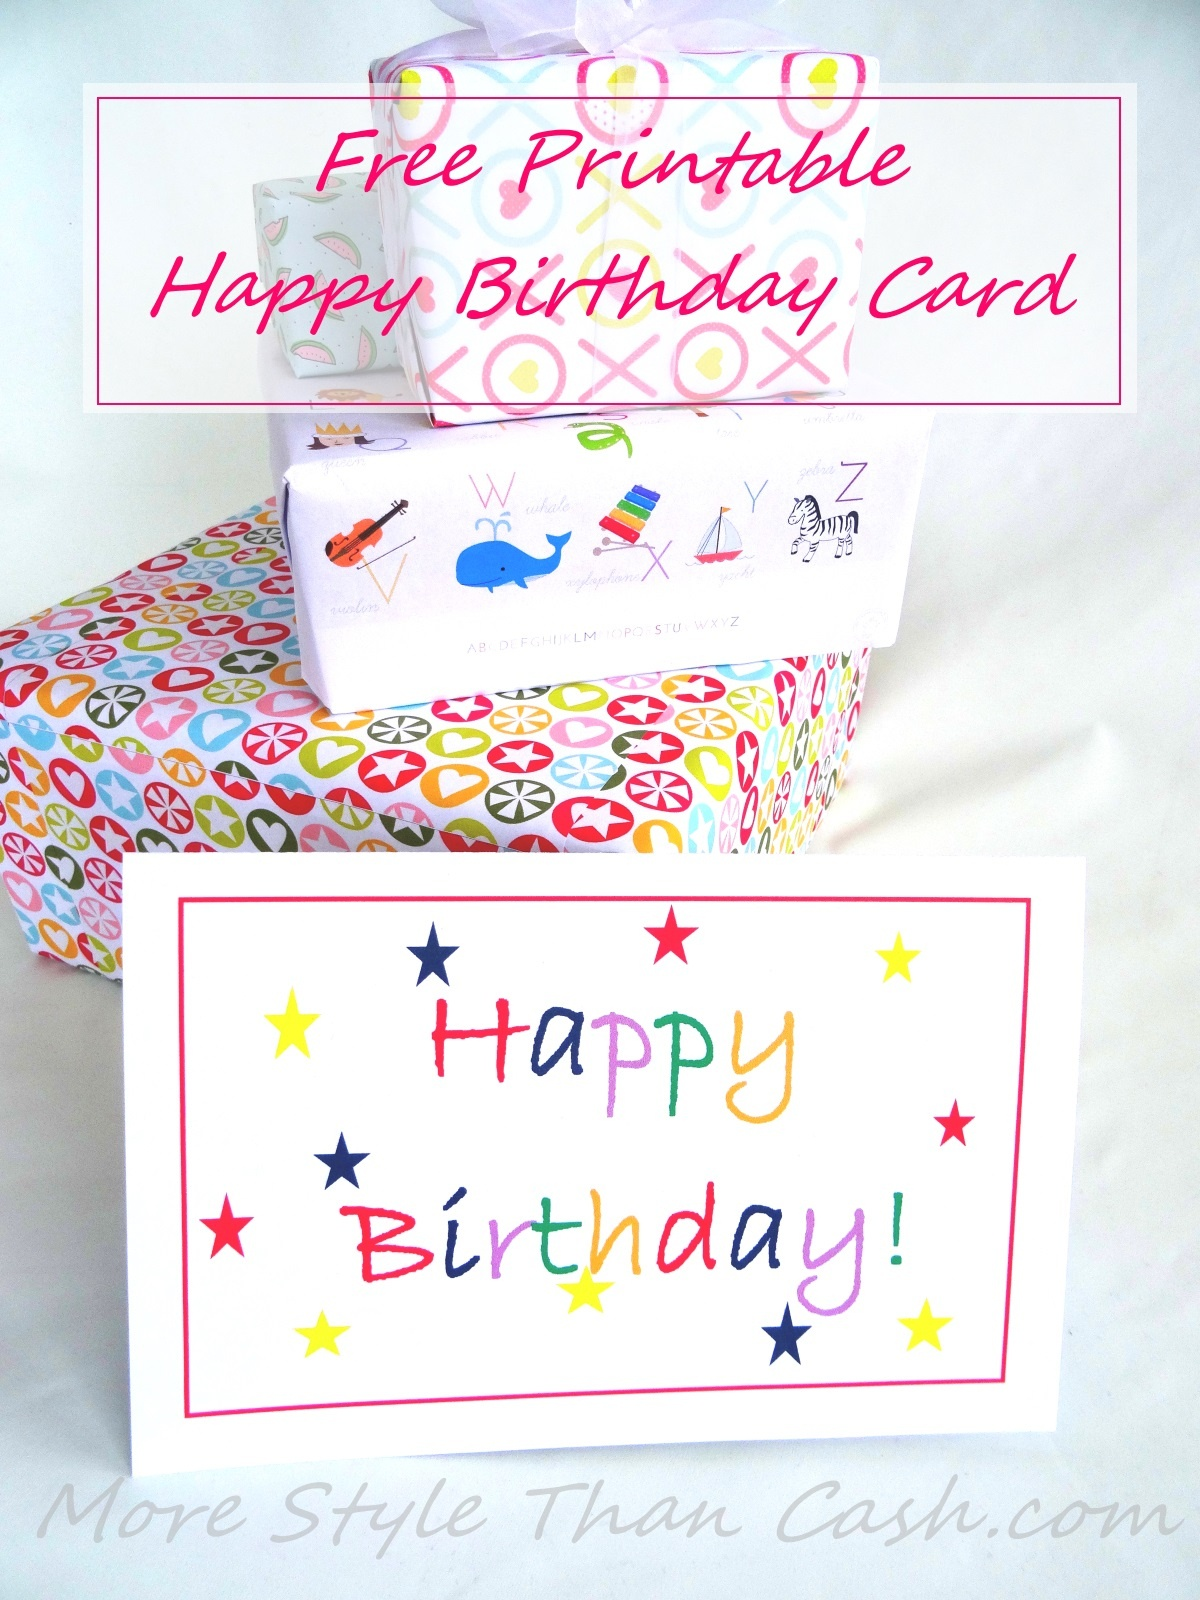 Free Printable Birthday Card - Happy Birthday Free Cards Printable